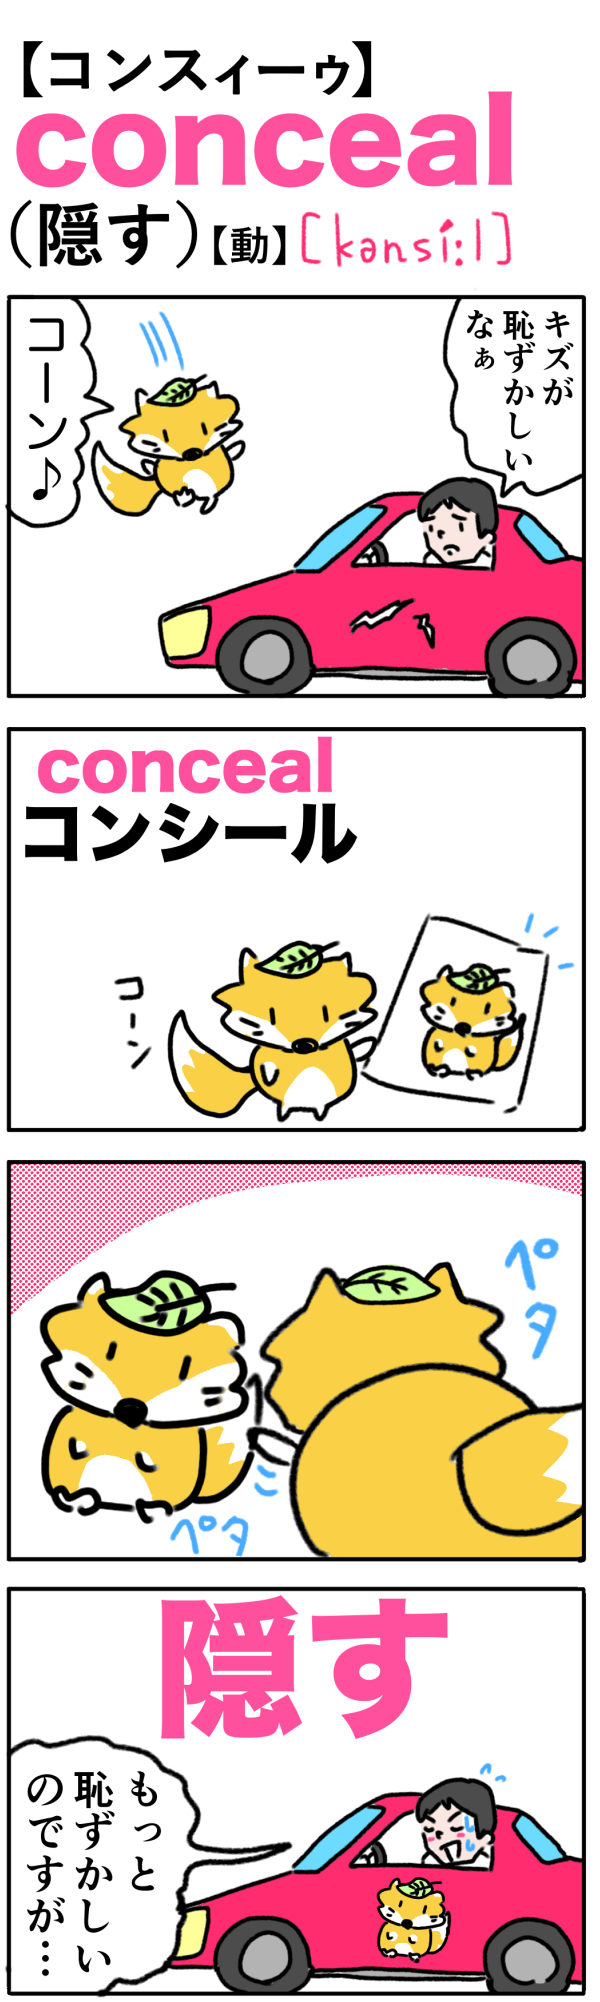 conceal(隠す)